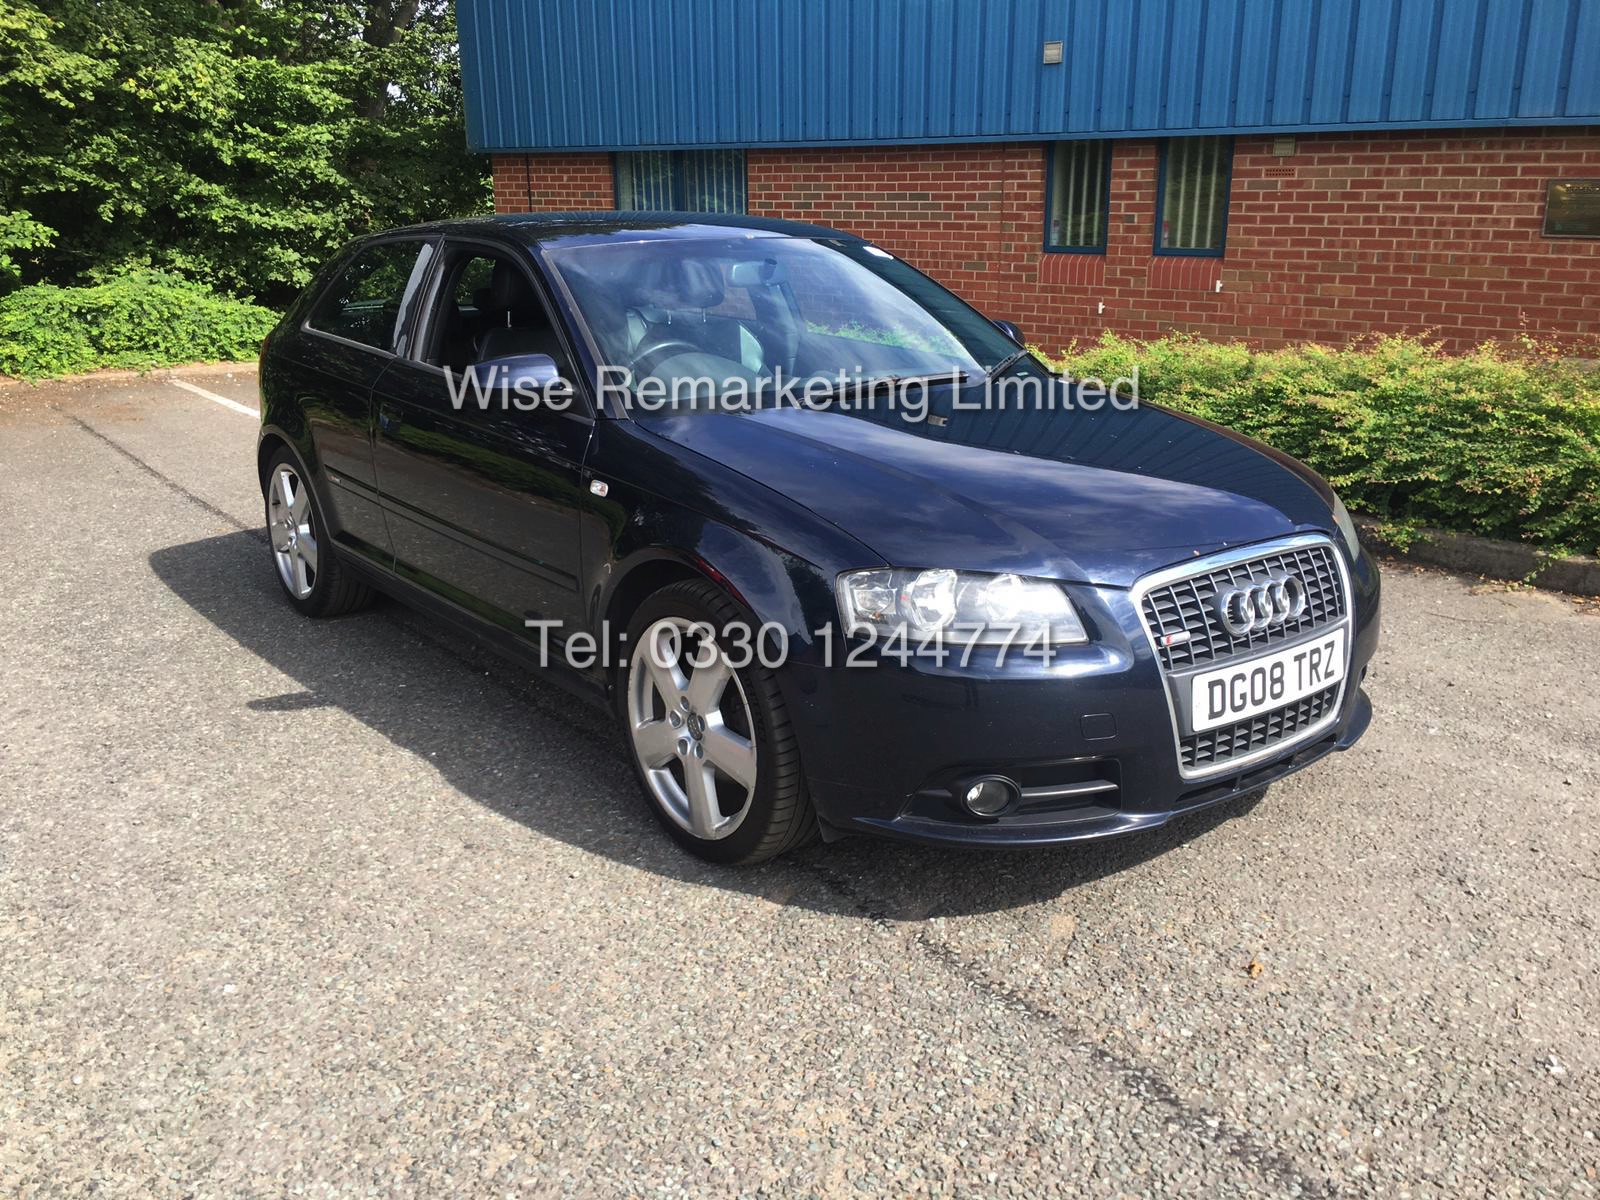 Lot 22 - AUDI A3 S LINE 2.0 TDI 140BHP - SERVICE HISTORY - LEATHER INTERIOR - 2008